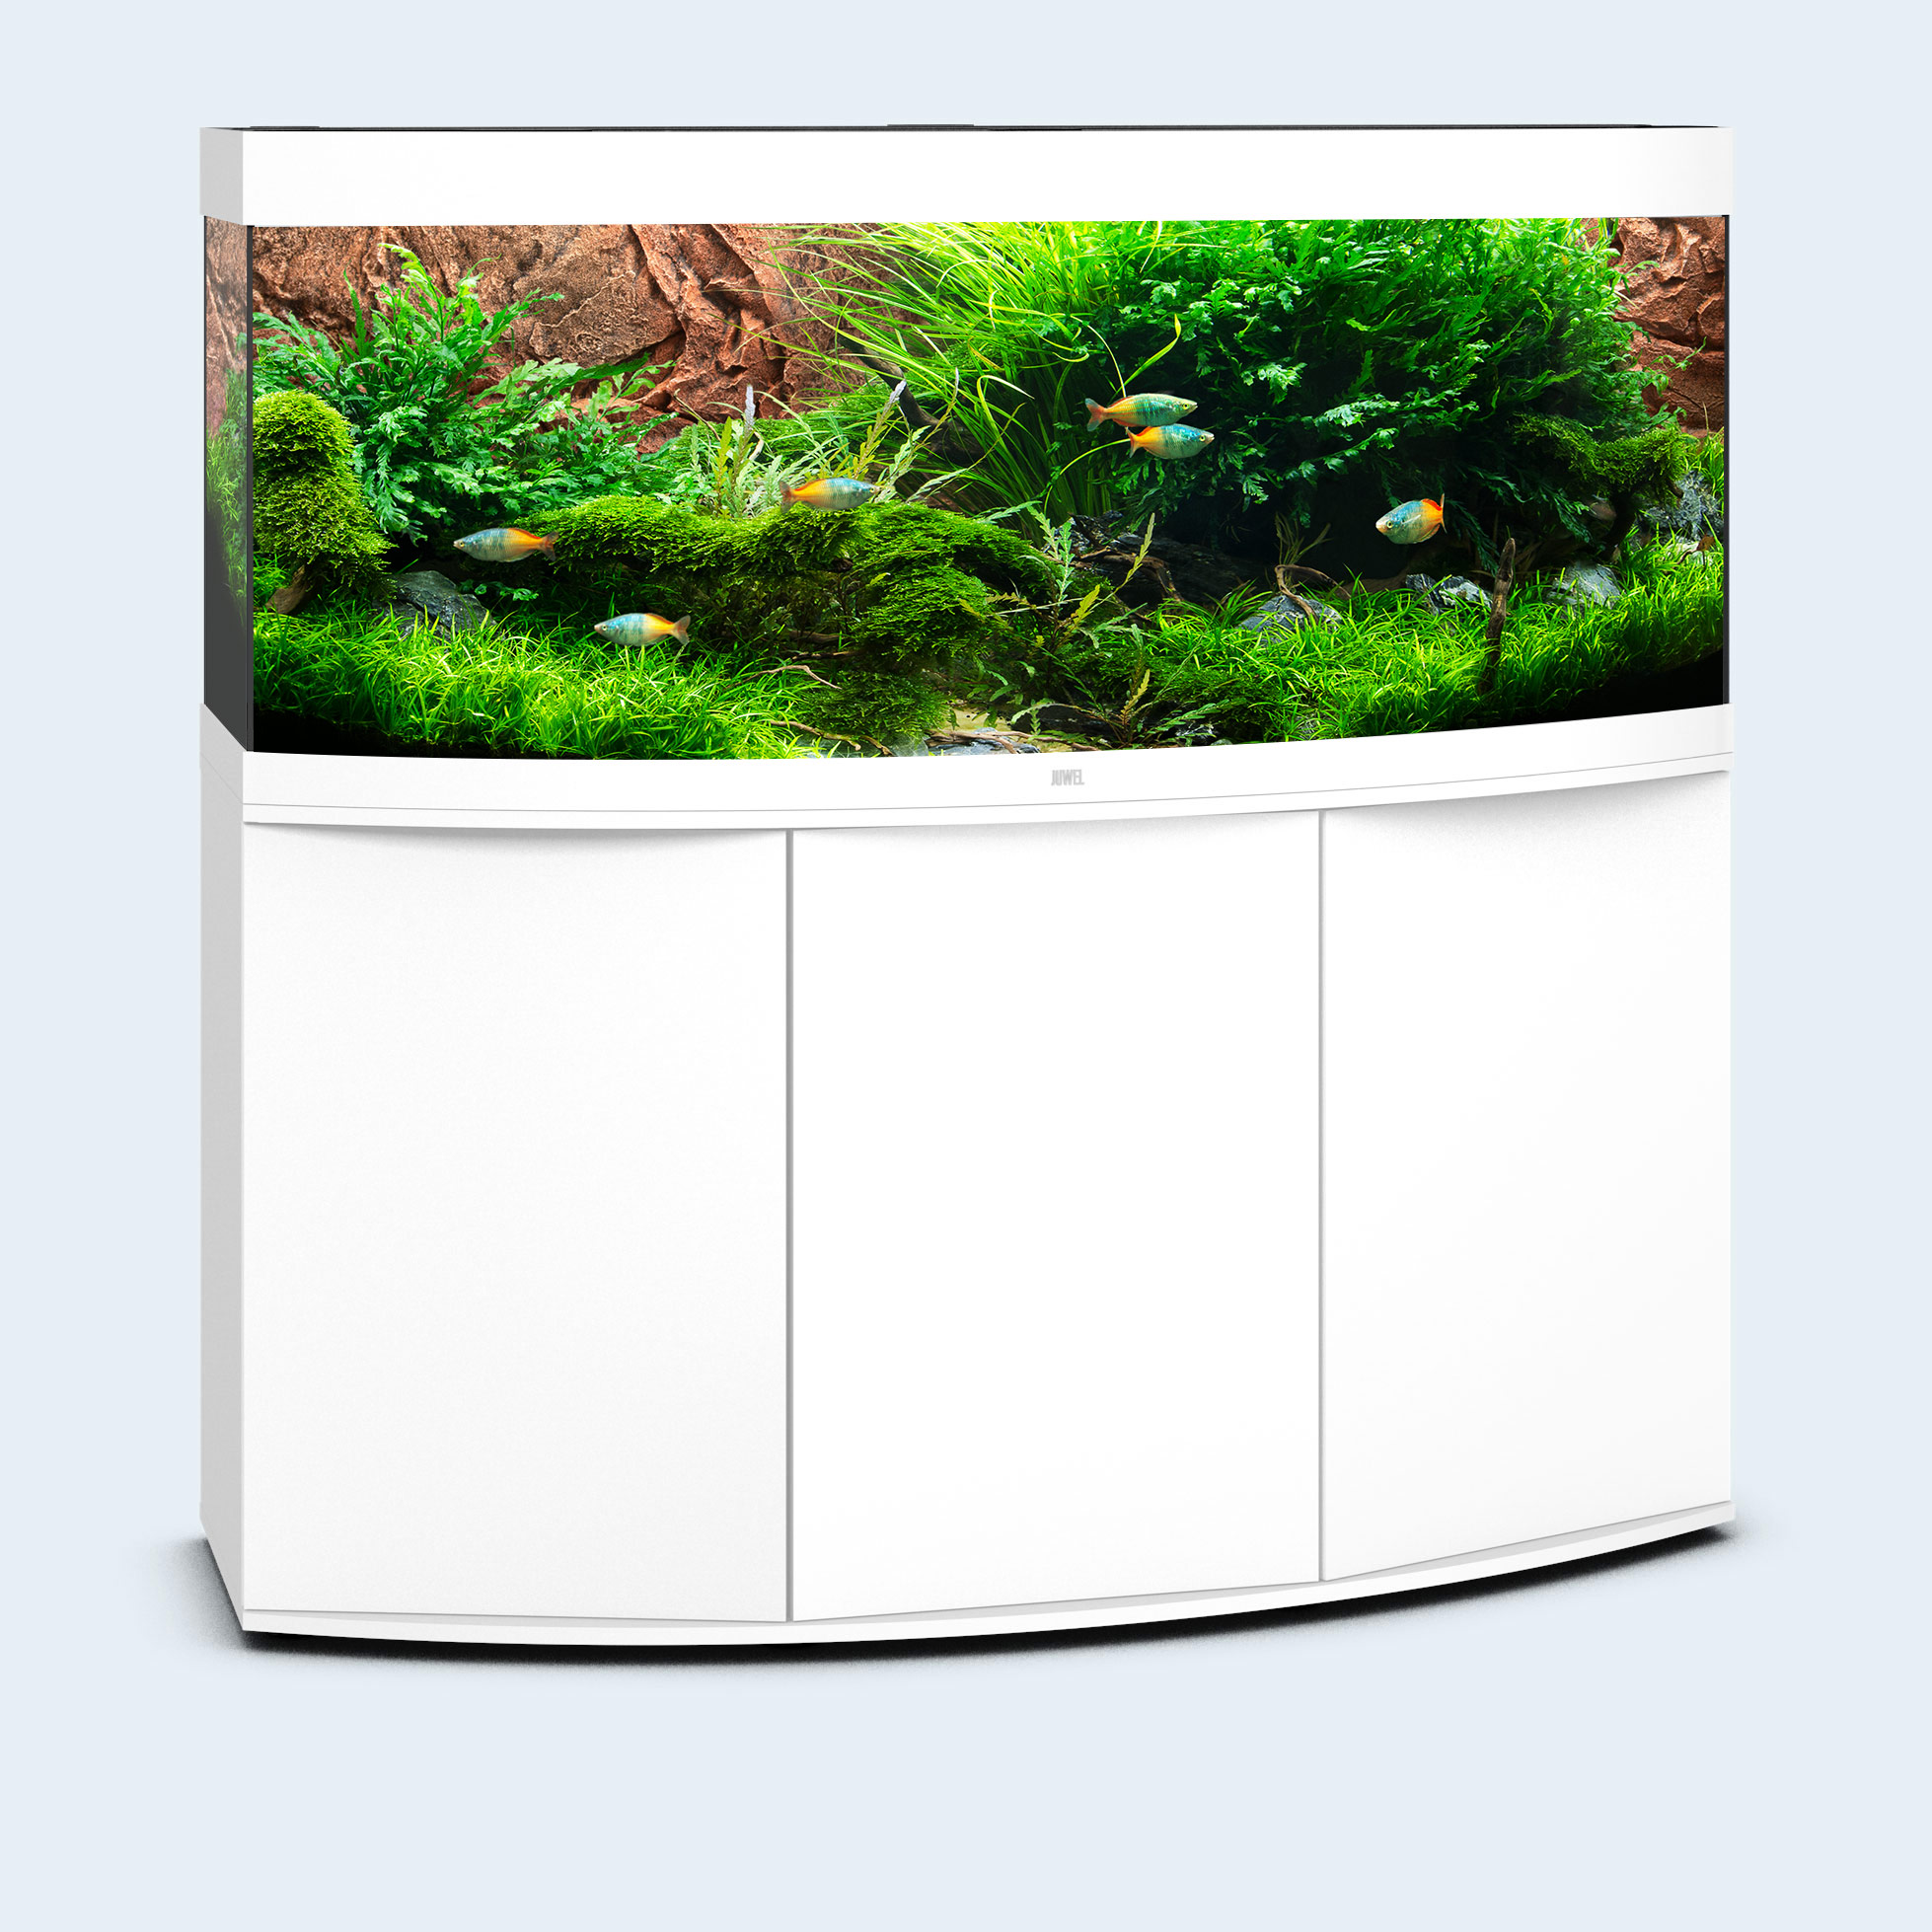 juwel aquarium vision 450 led. Black Bedroom Furniture Sets. Home Design Ideas